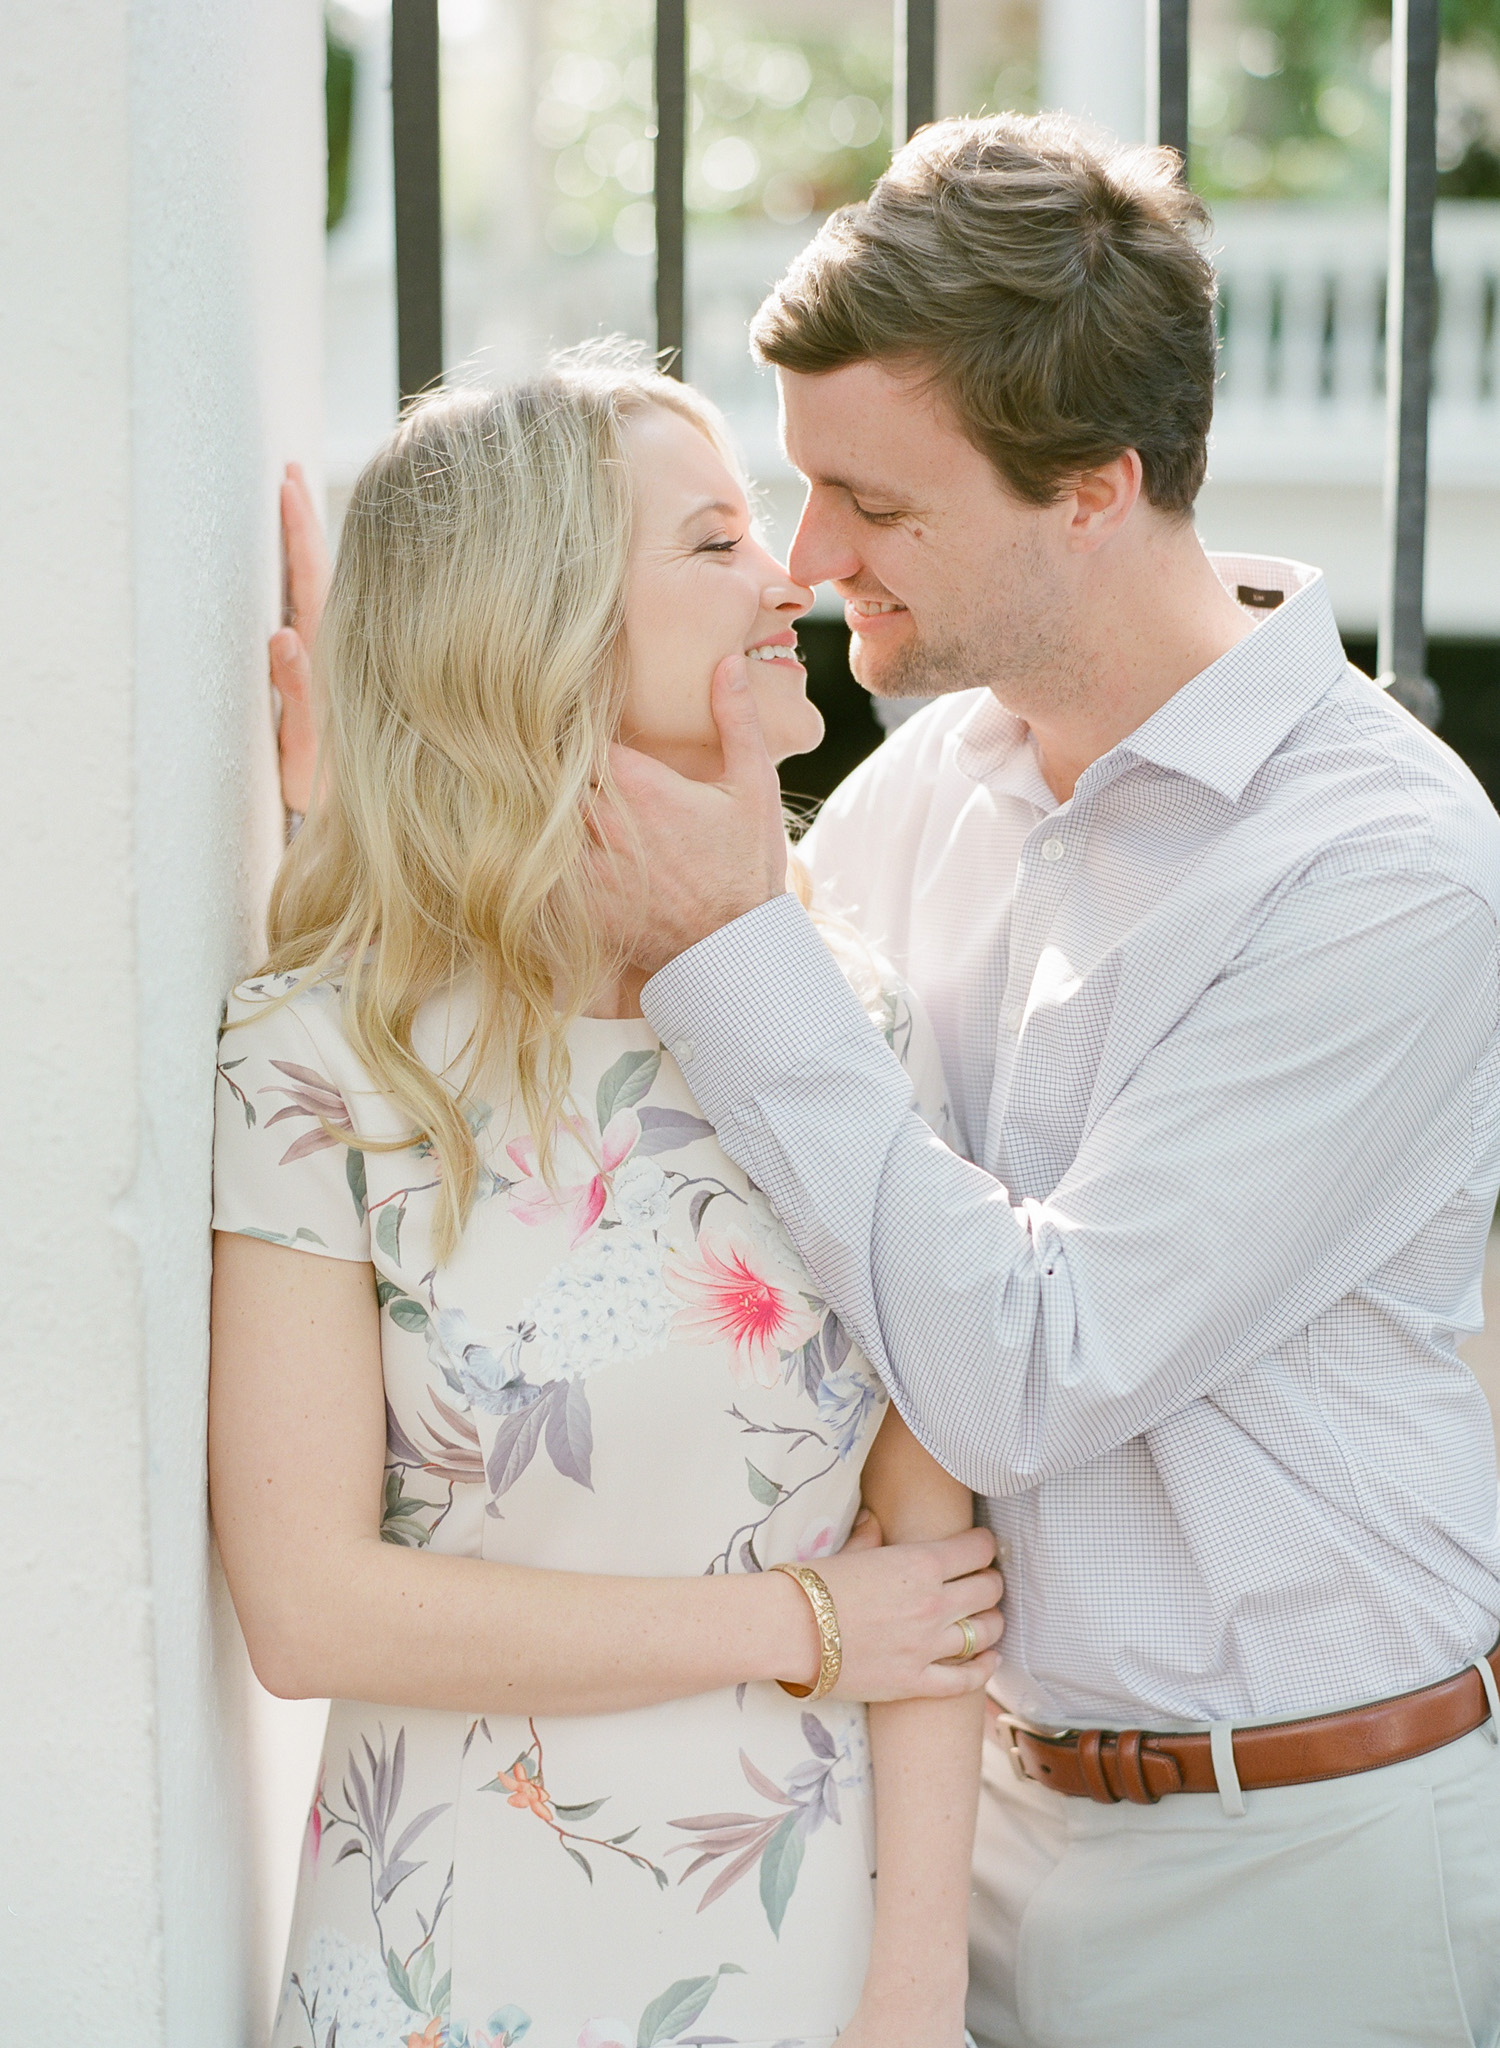 Charleston-Engagement-Session-Photos-56.jpg